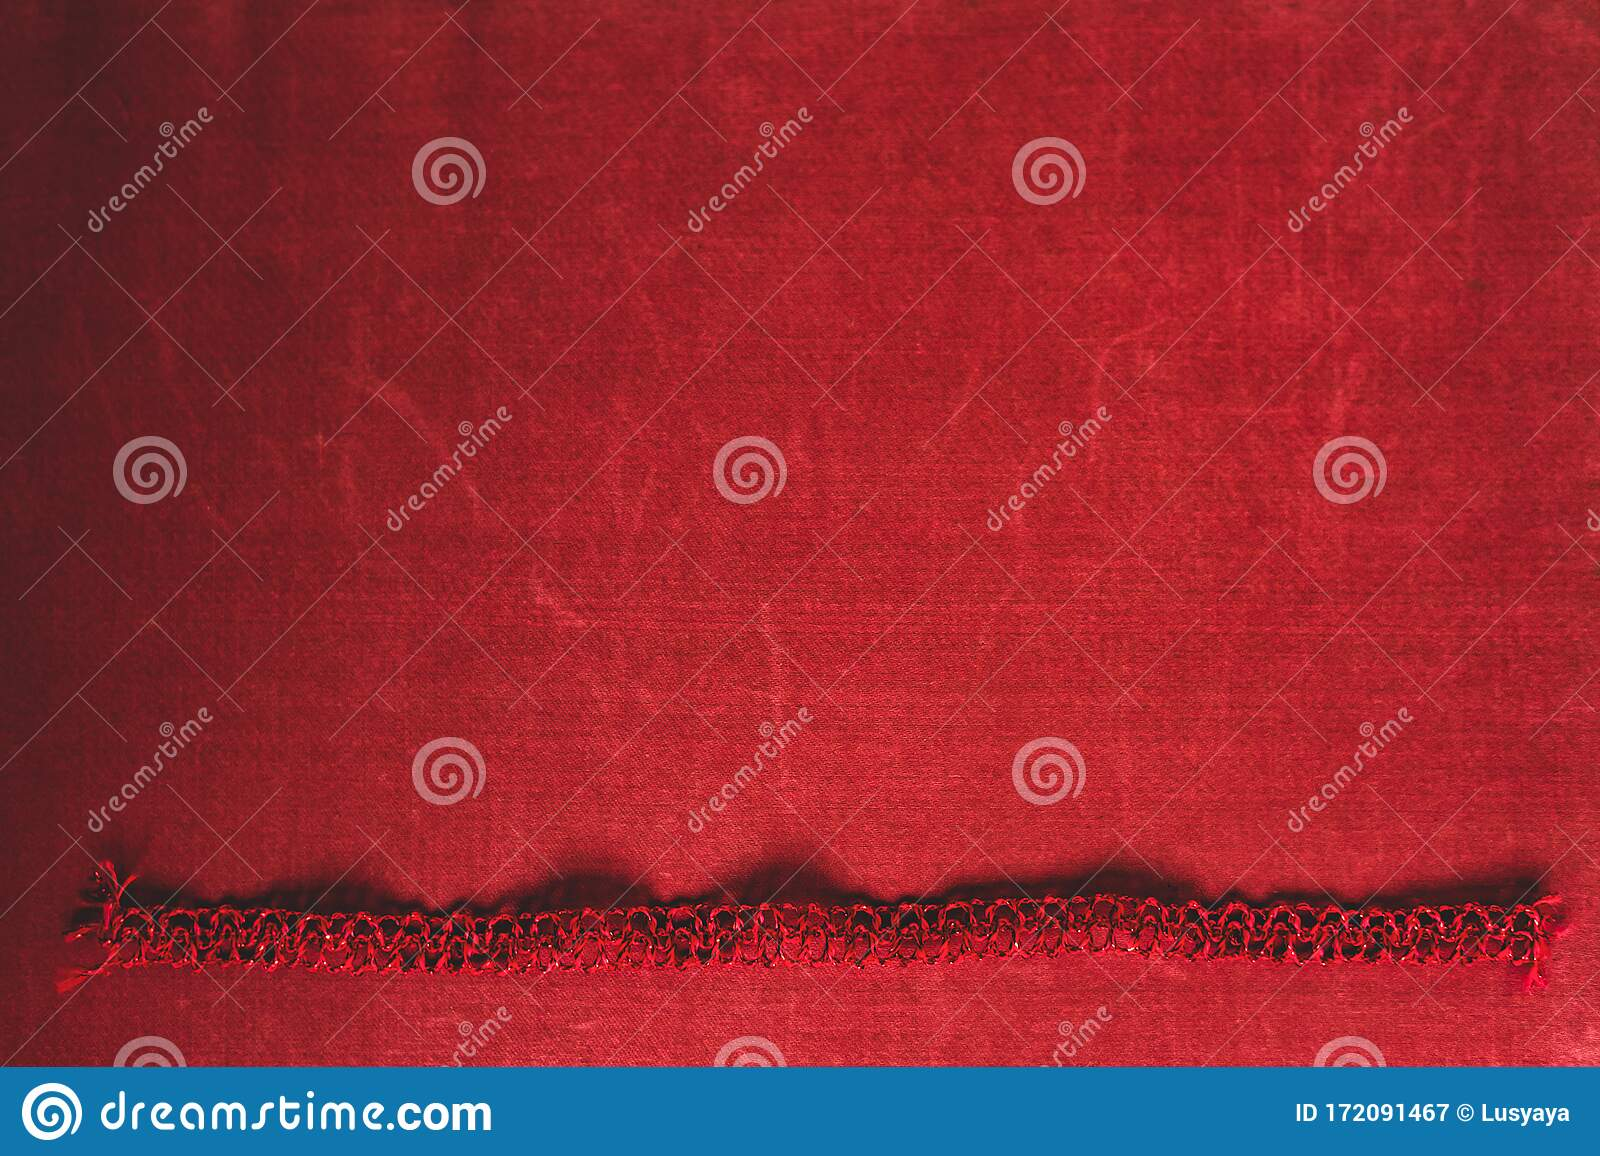 greeting card on old red textile border fabric backgrounds